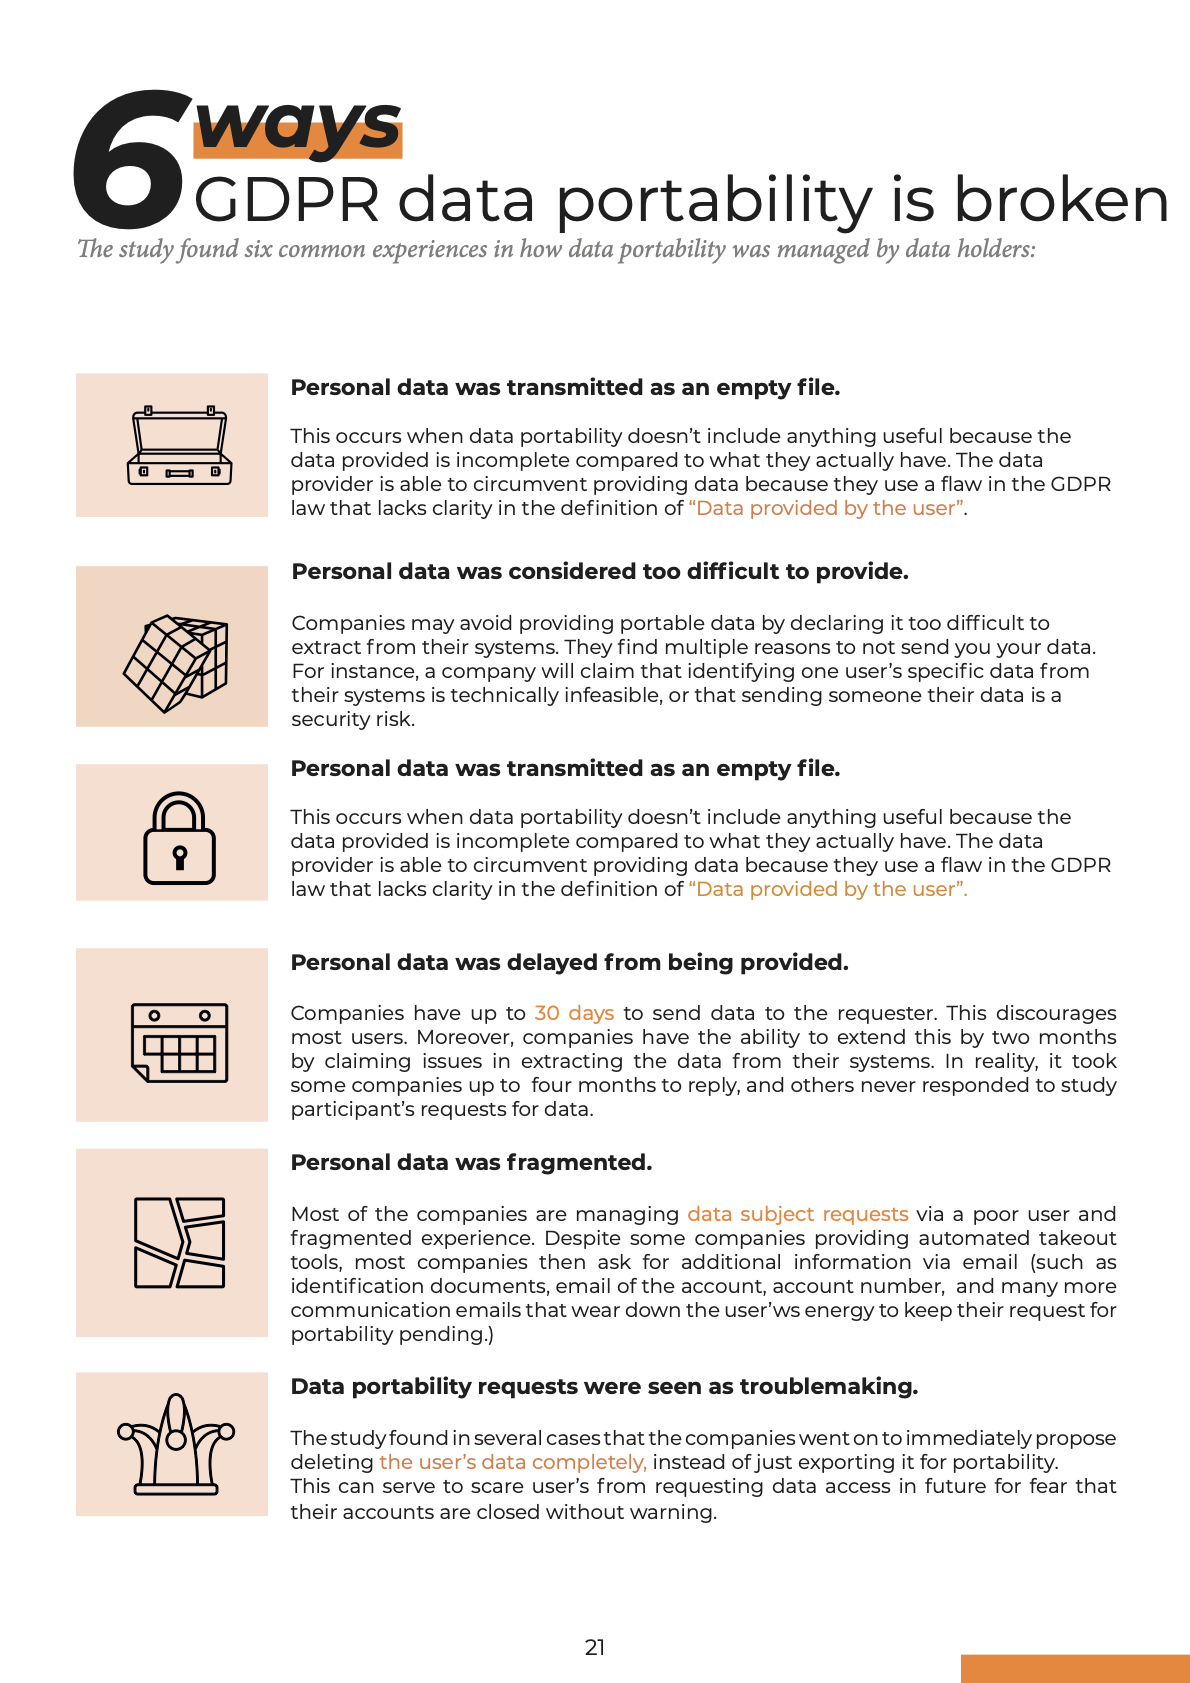 Image of the '6 ways GDPR data portability is broken in practice' part of the GDPR Report